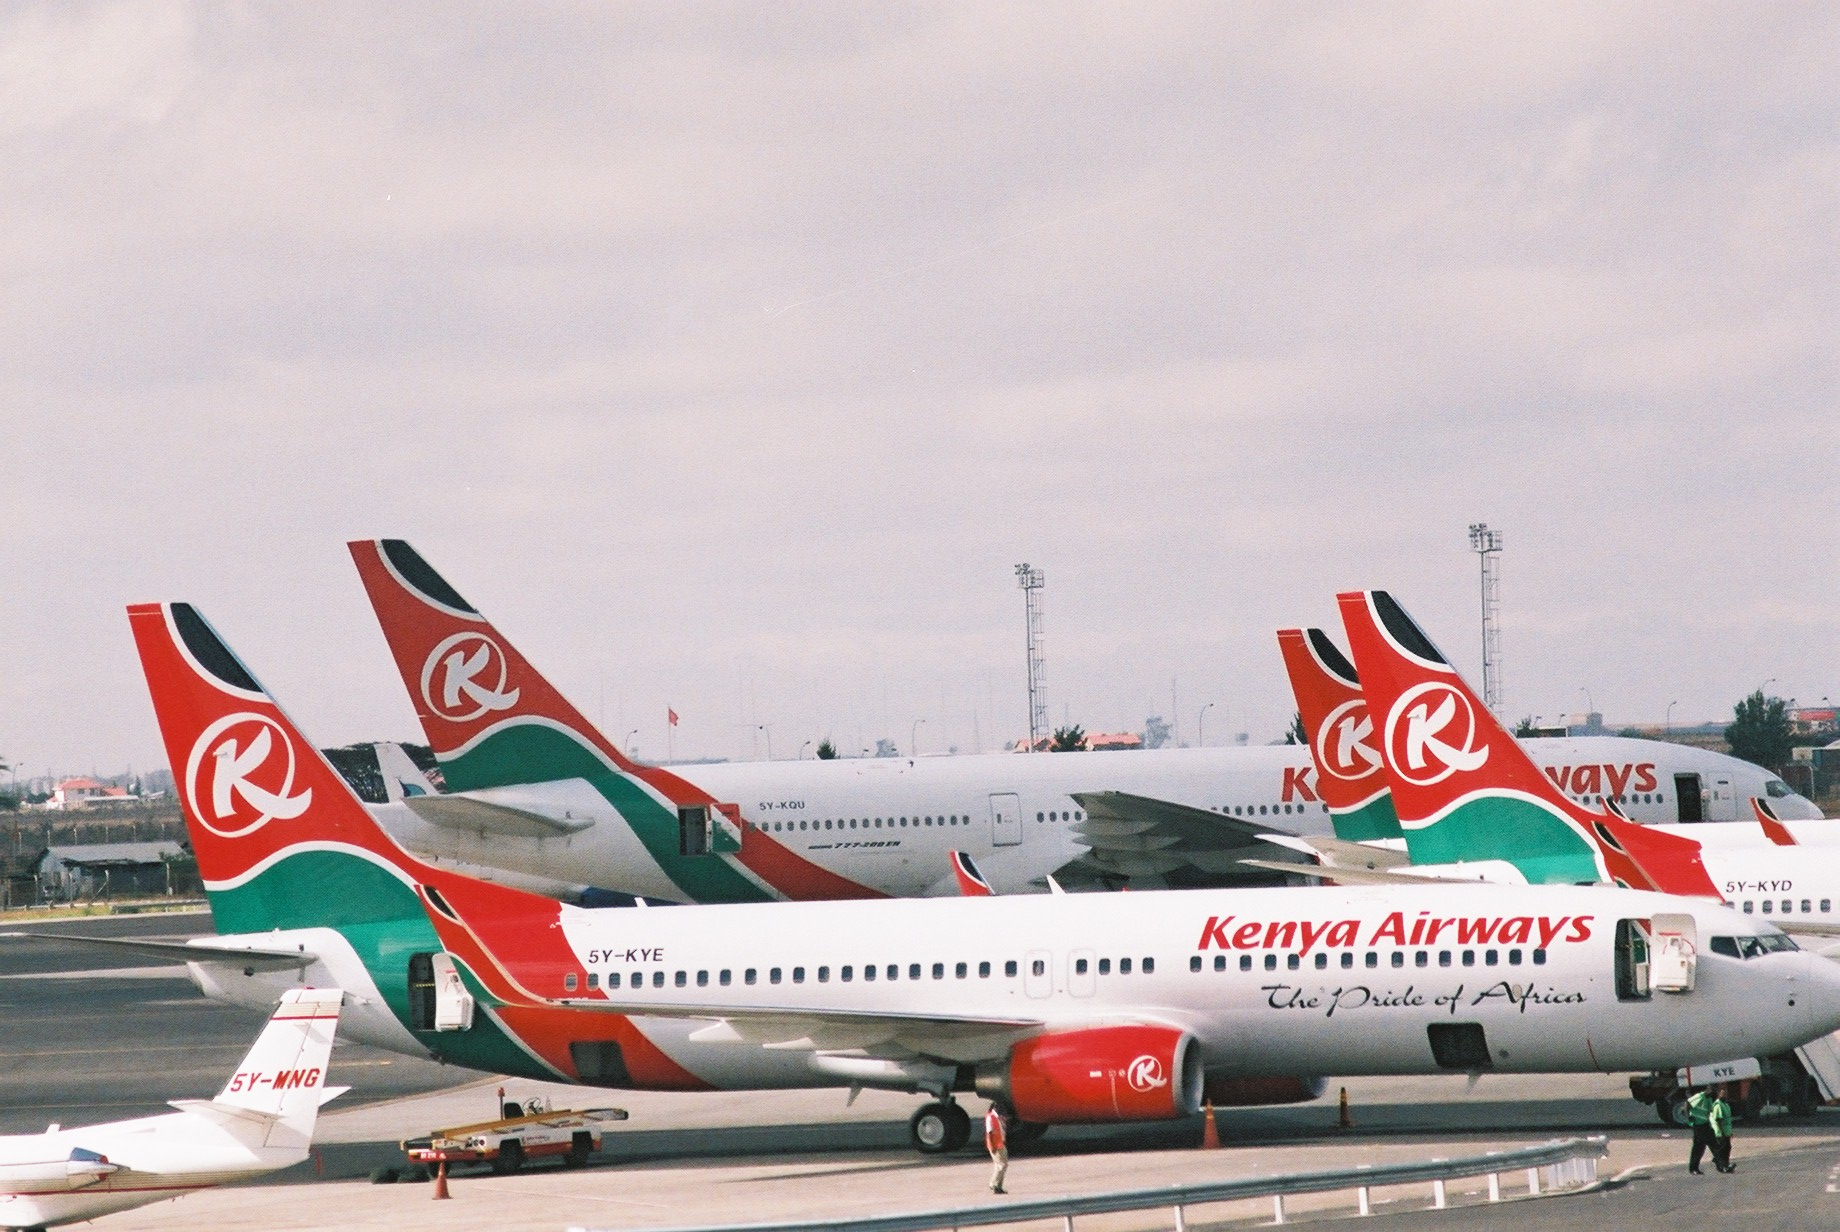 KAA aims at becoming the greenest airport in Africa